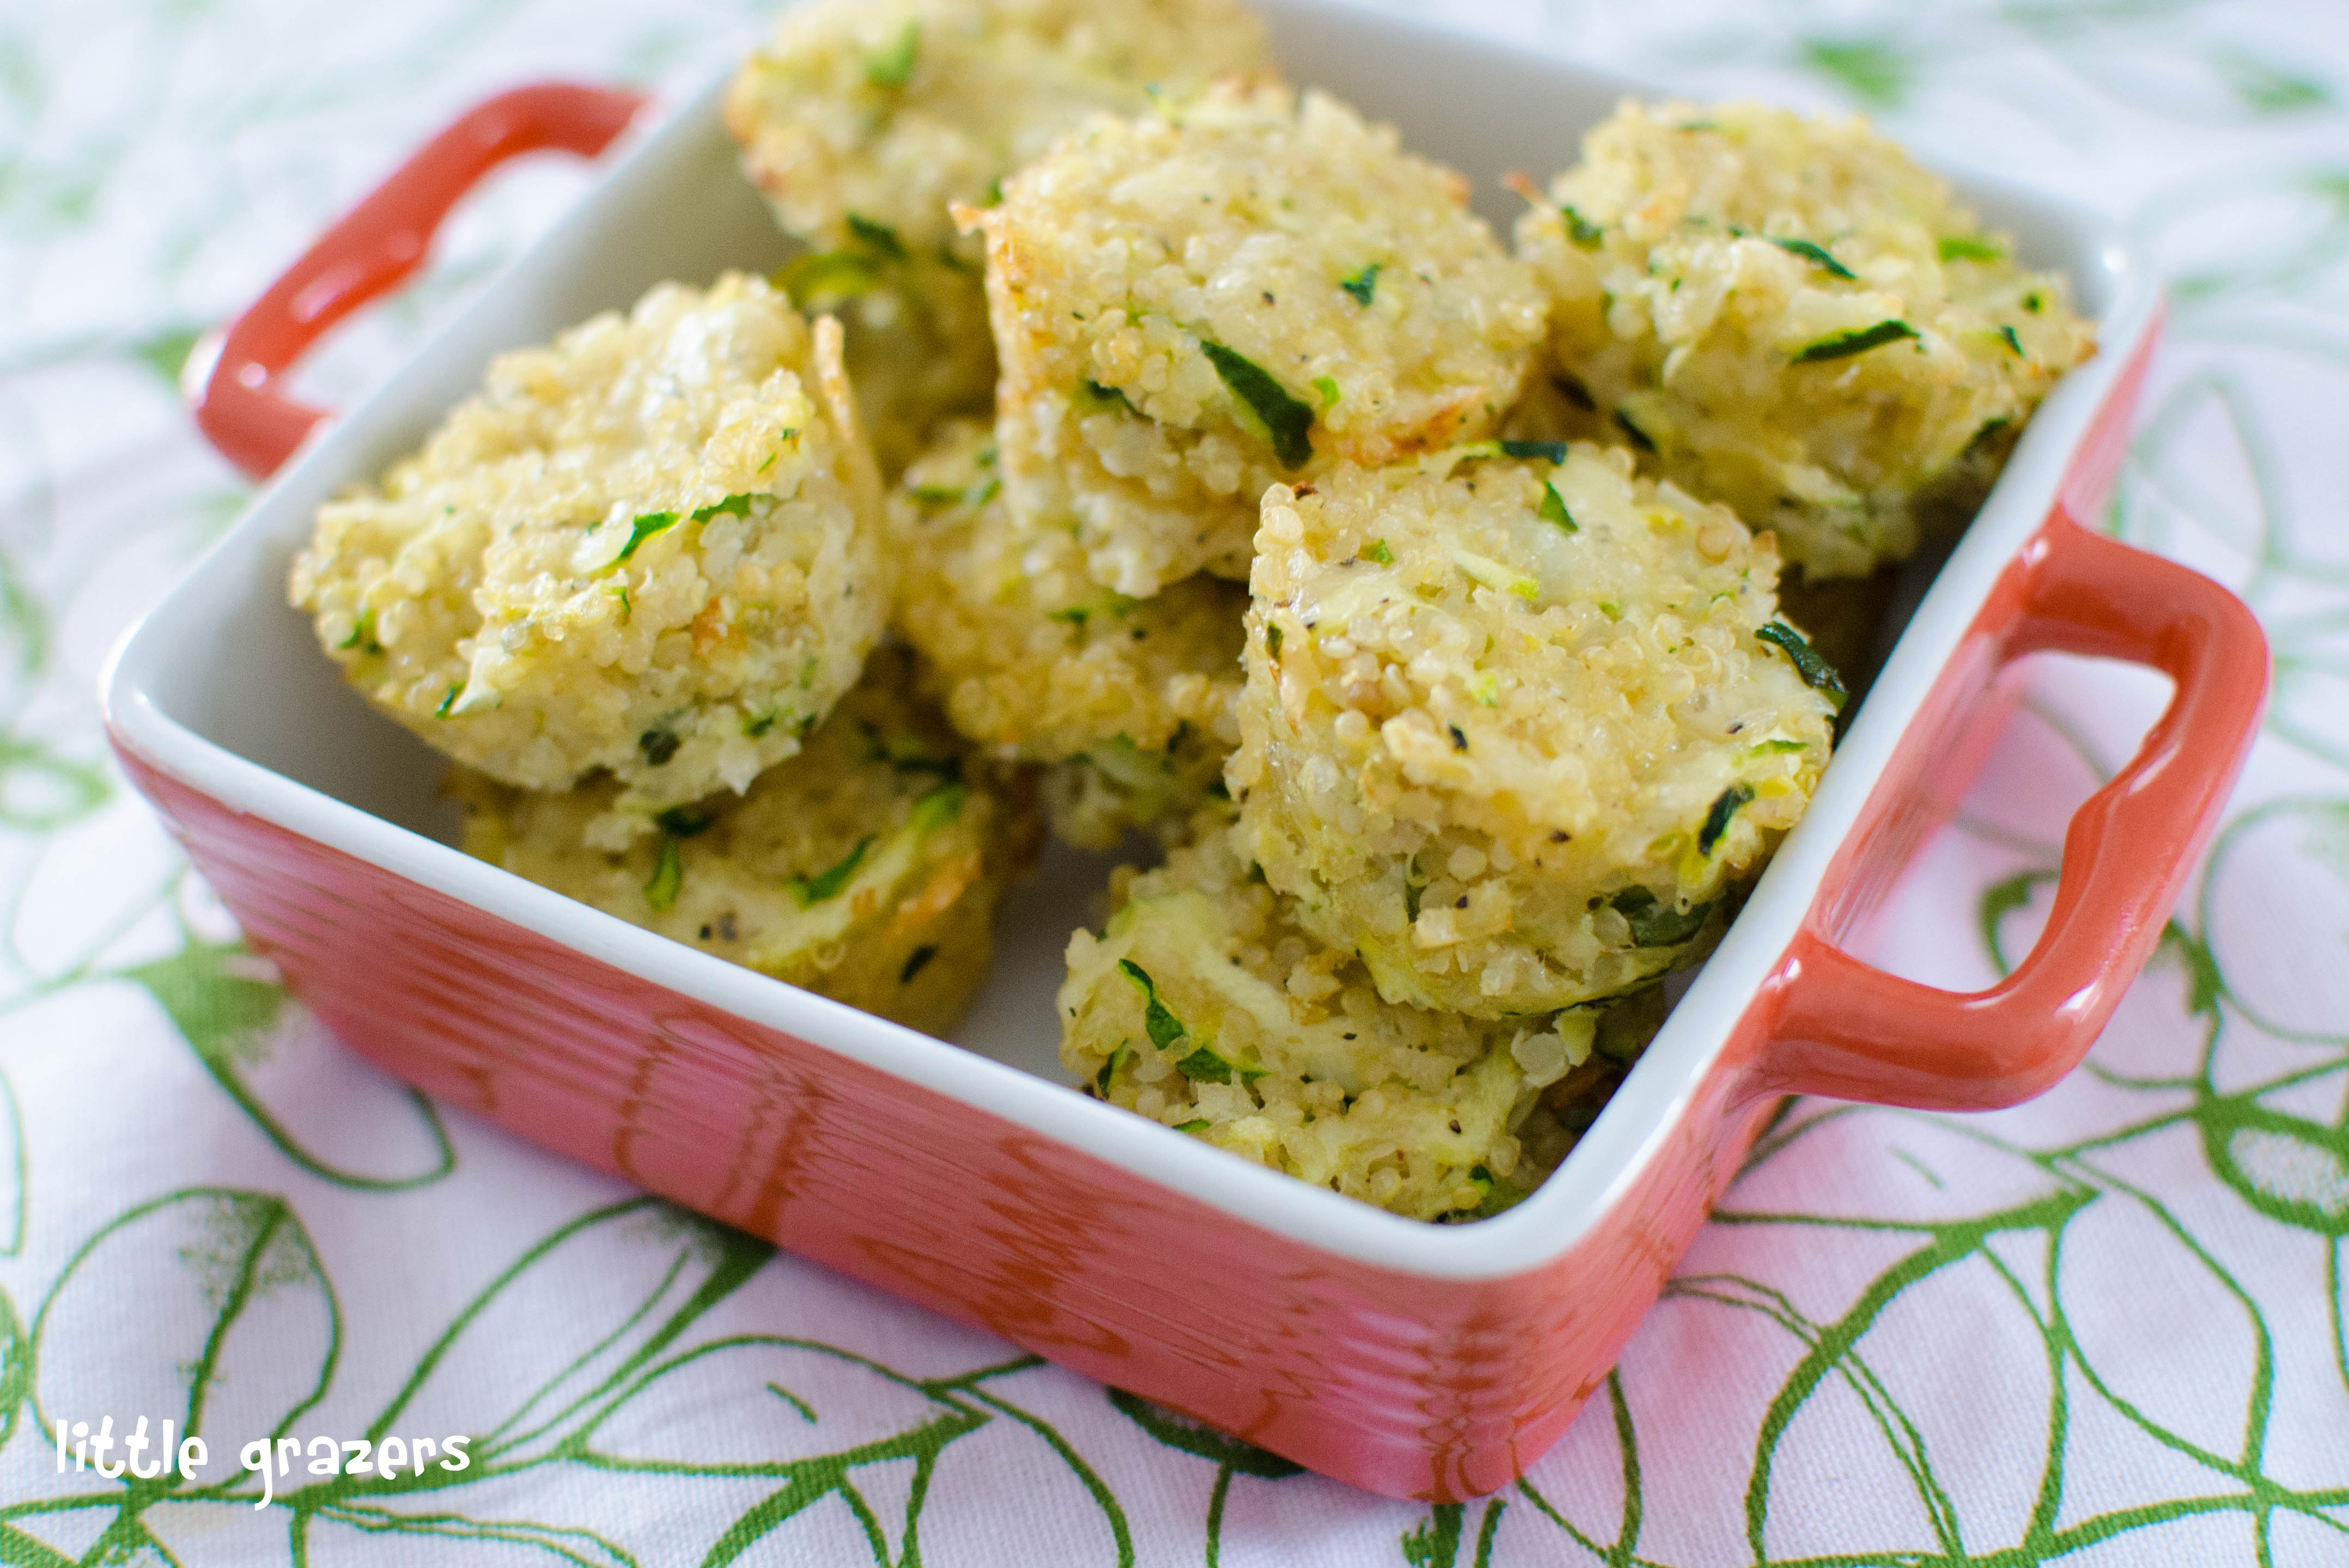 And parmesan quinoa bites zucchini and parmesan quinoa bites forumfinder Choice Image